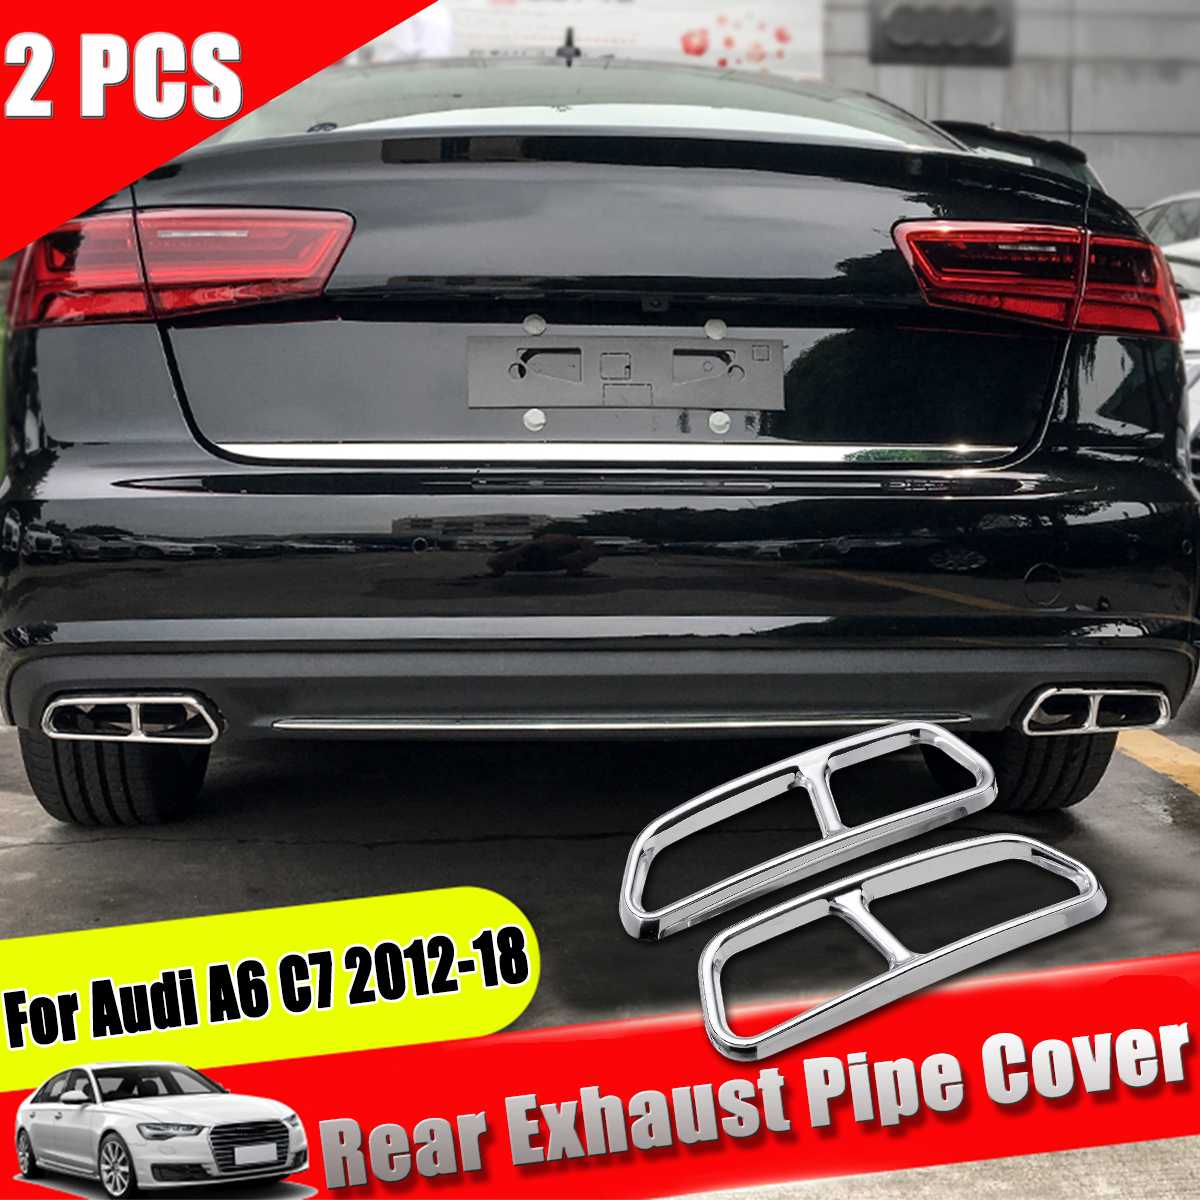 63mm-89mm Car SUV Dual Exhaust Pipe Tail Muffler Tip Anti-UV Corrosion-Resistant